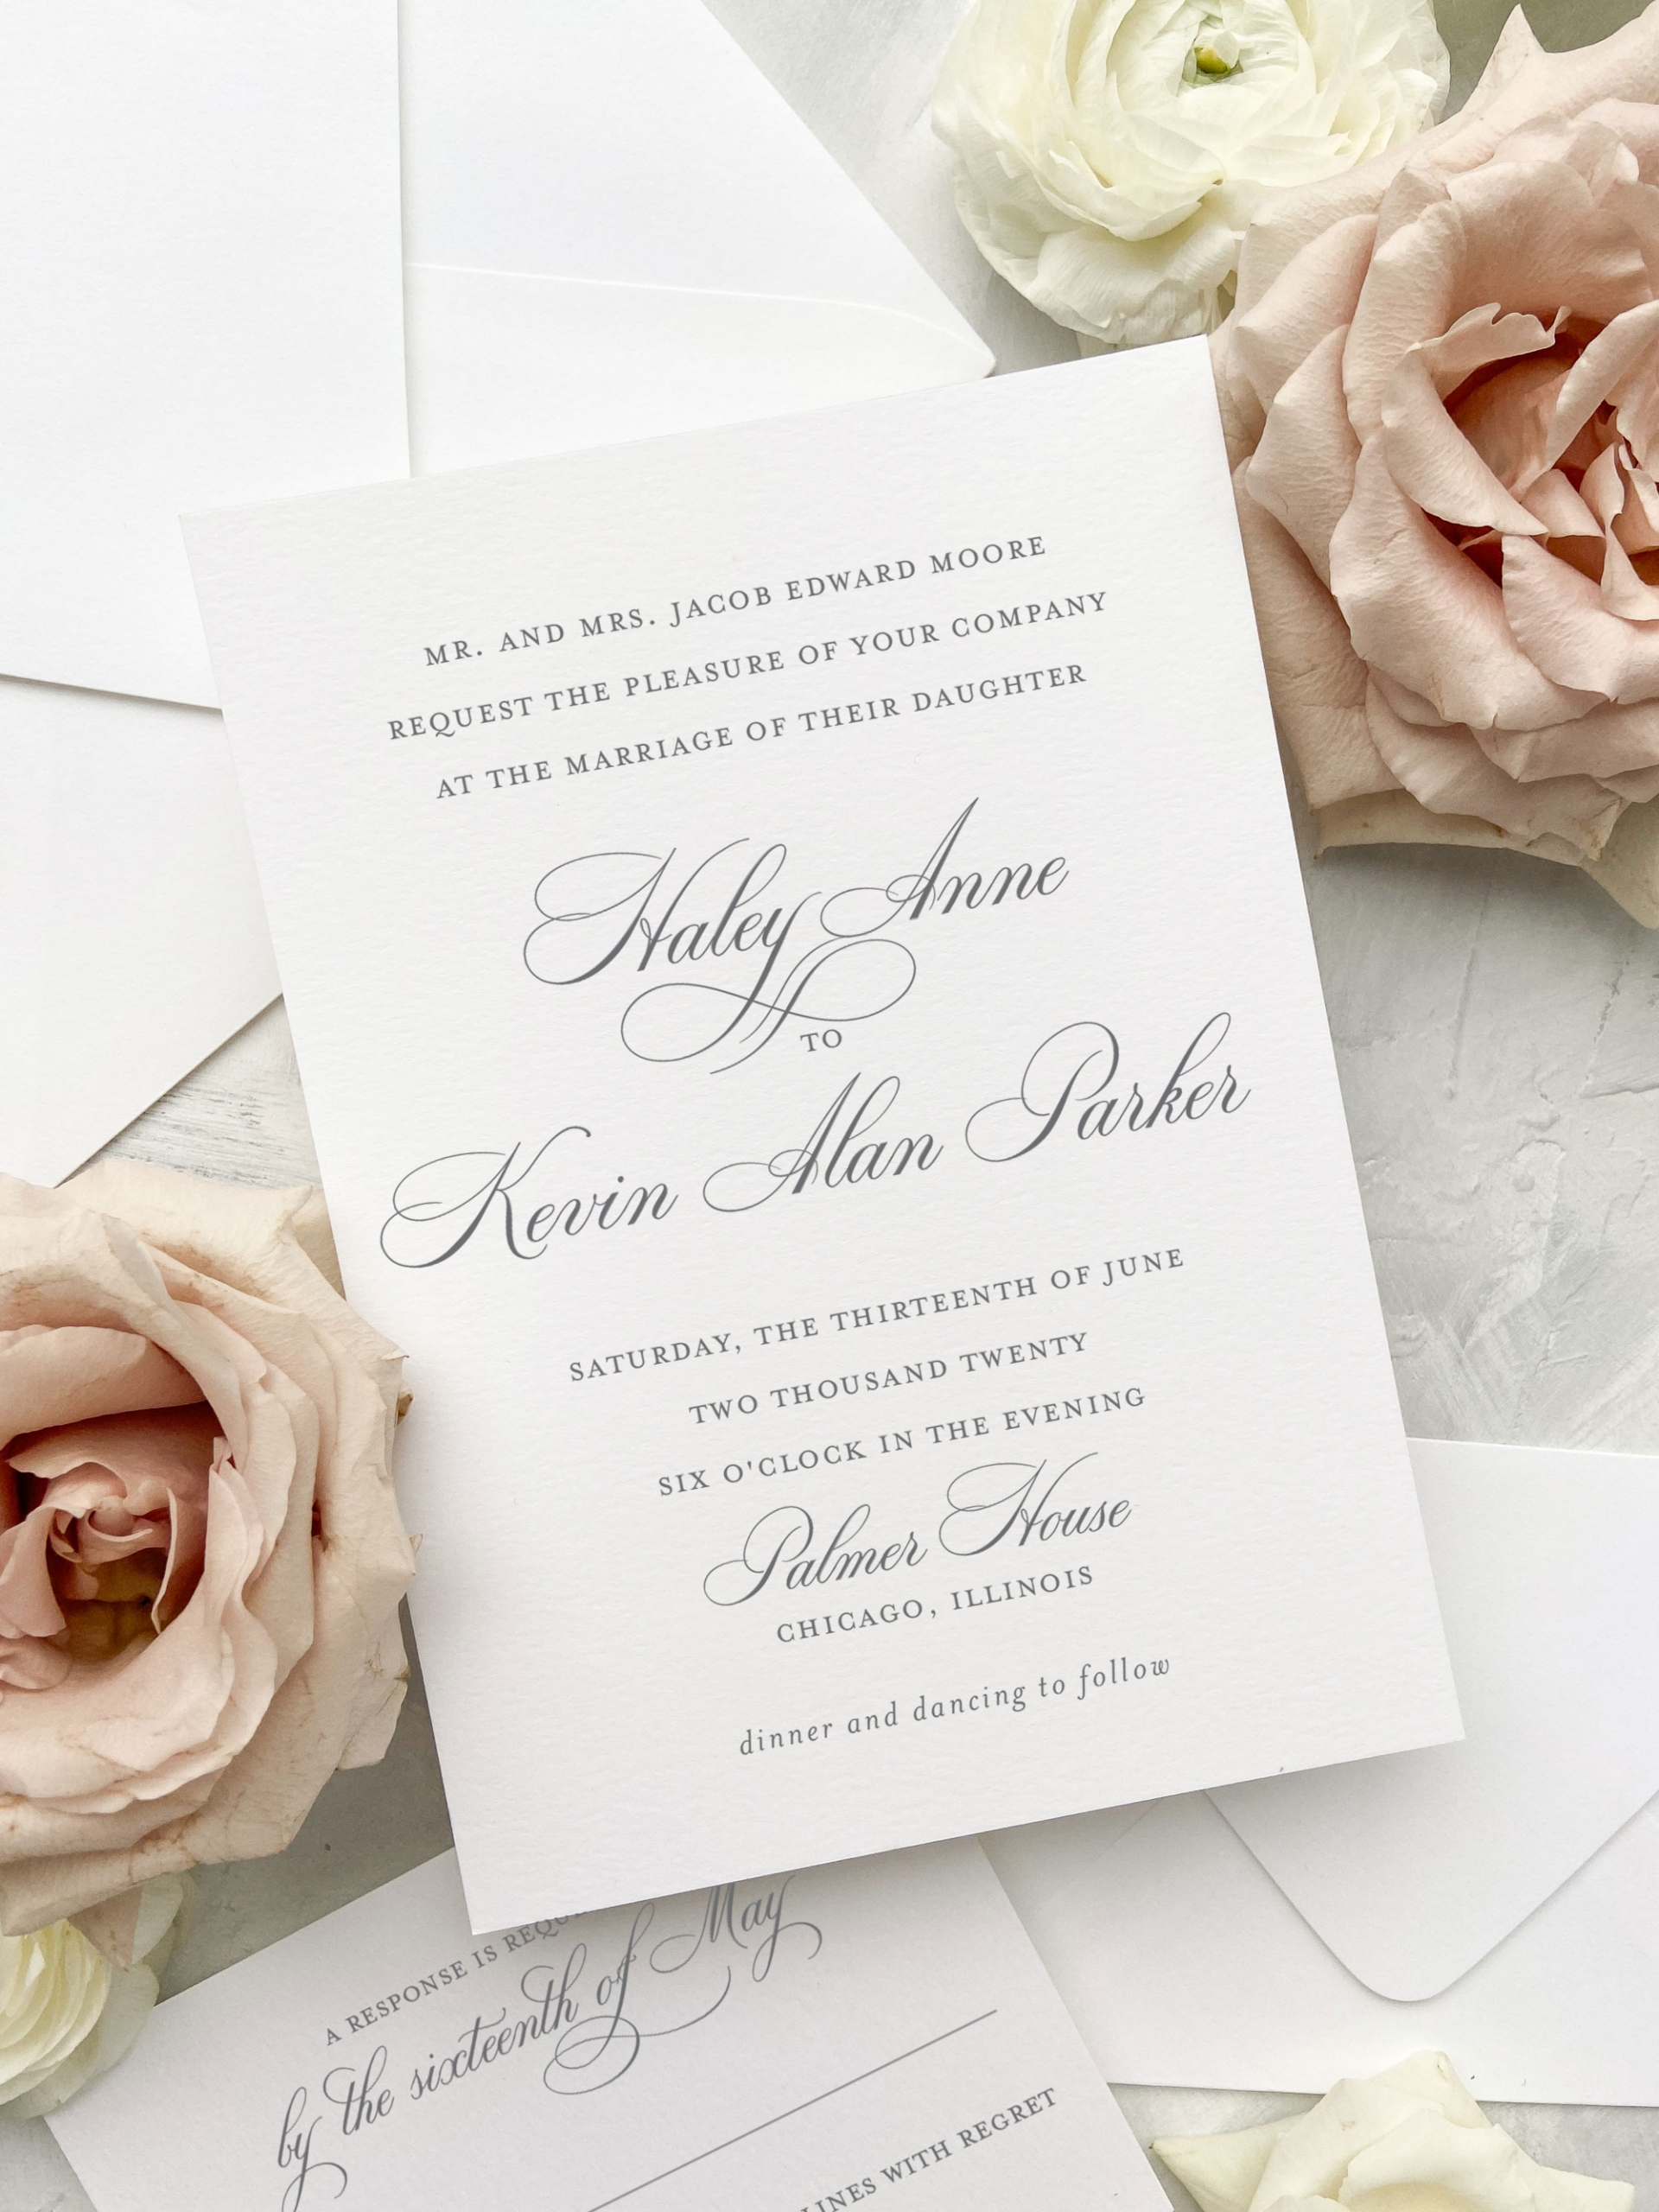 Classic script font wedding invitation. The wedding collection is made up of a traditional layout and artful elements to tailor your wedding invitation to your style. Available in digital printing, letterpress, and foil stamping. Semi-custom wedding invitations by Little Fox Paperie.